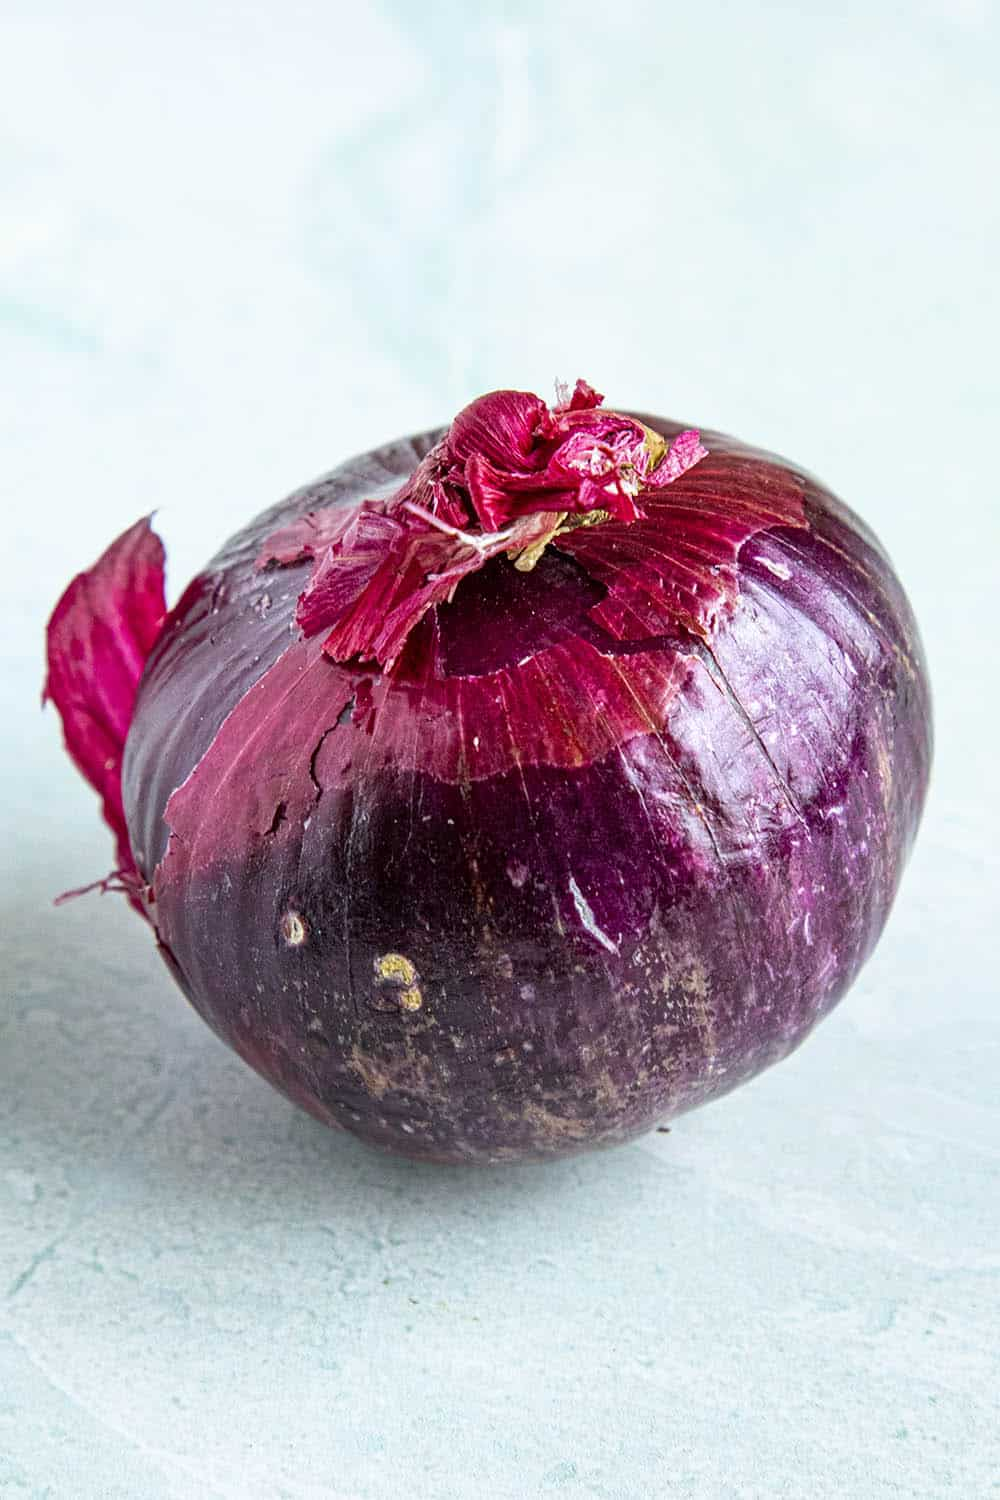 A large red onion